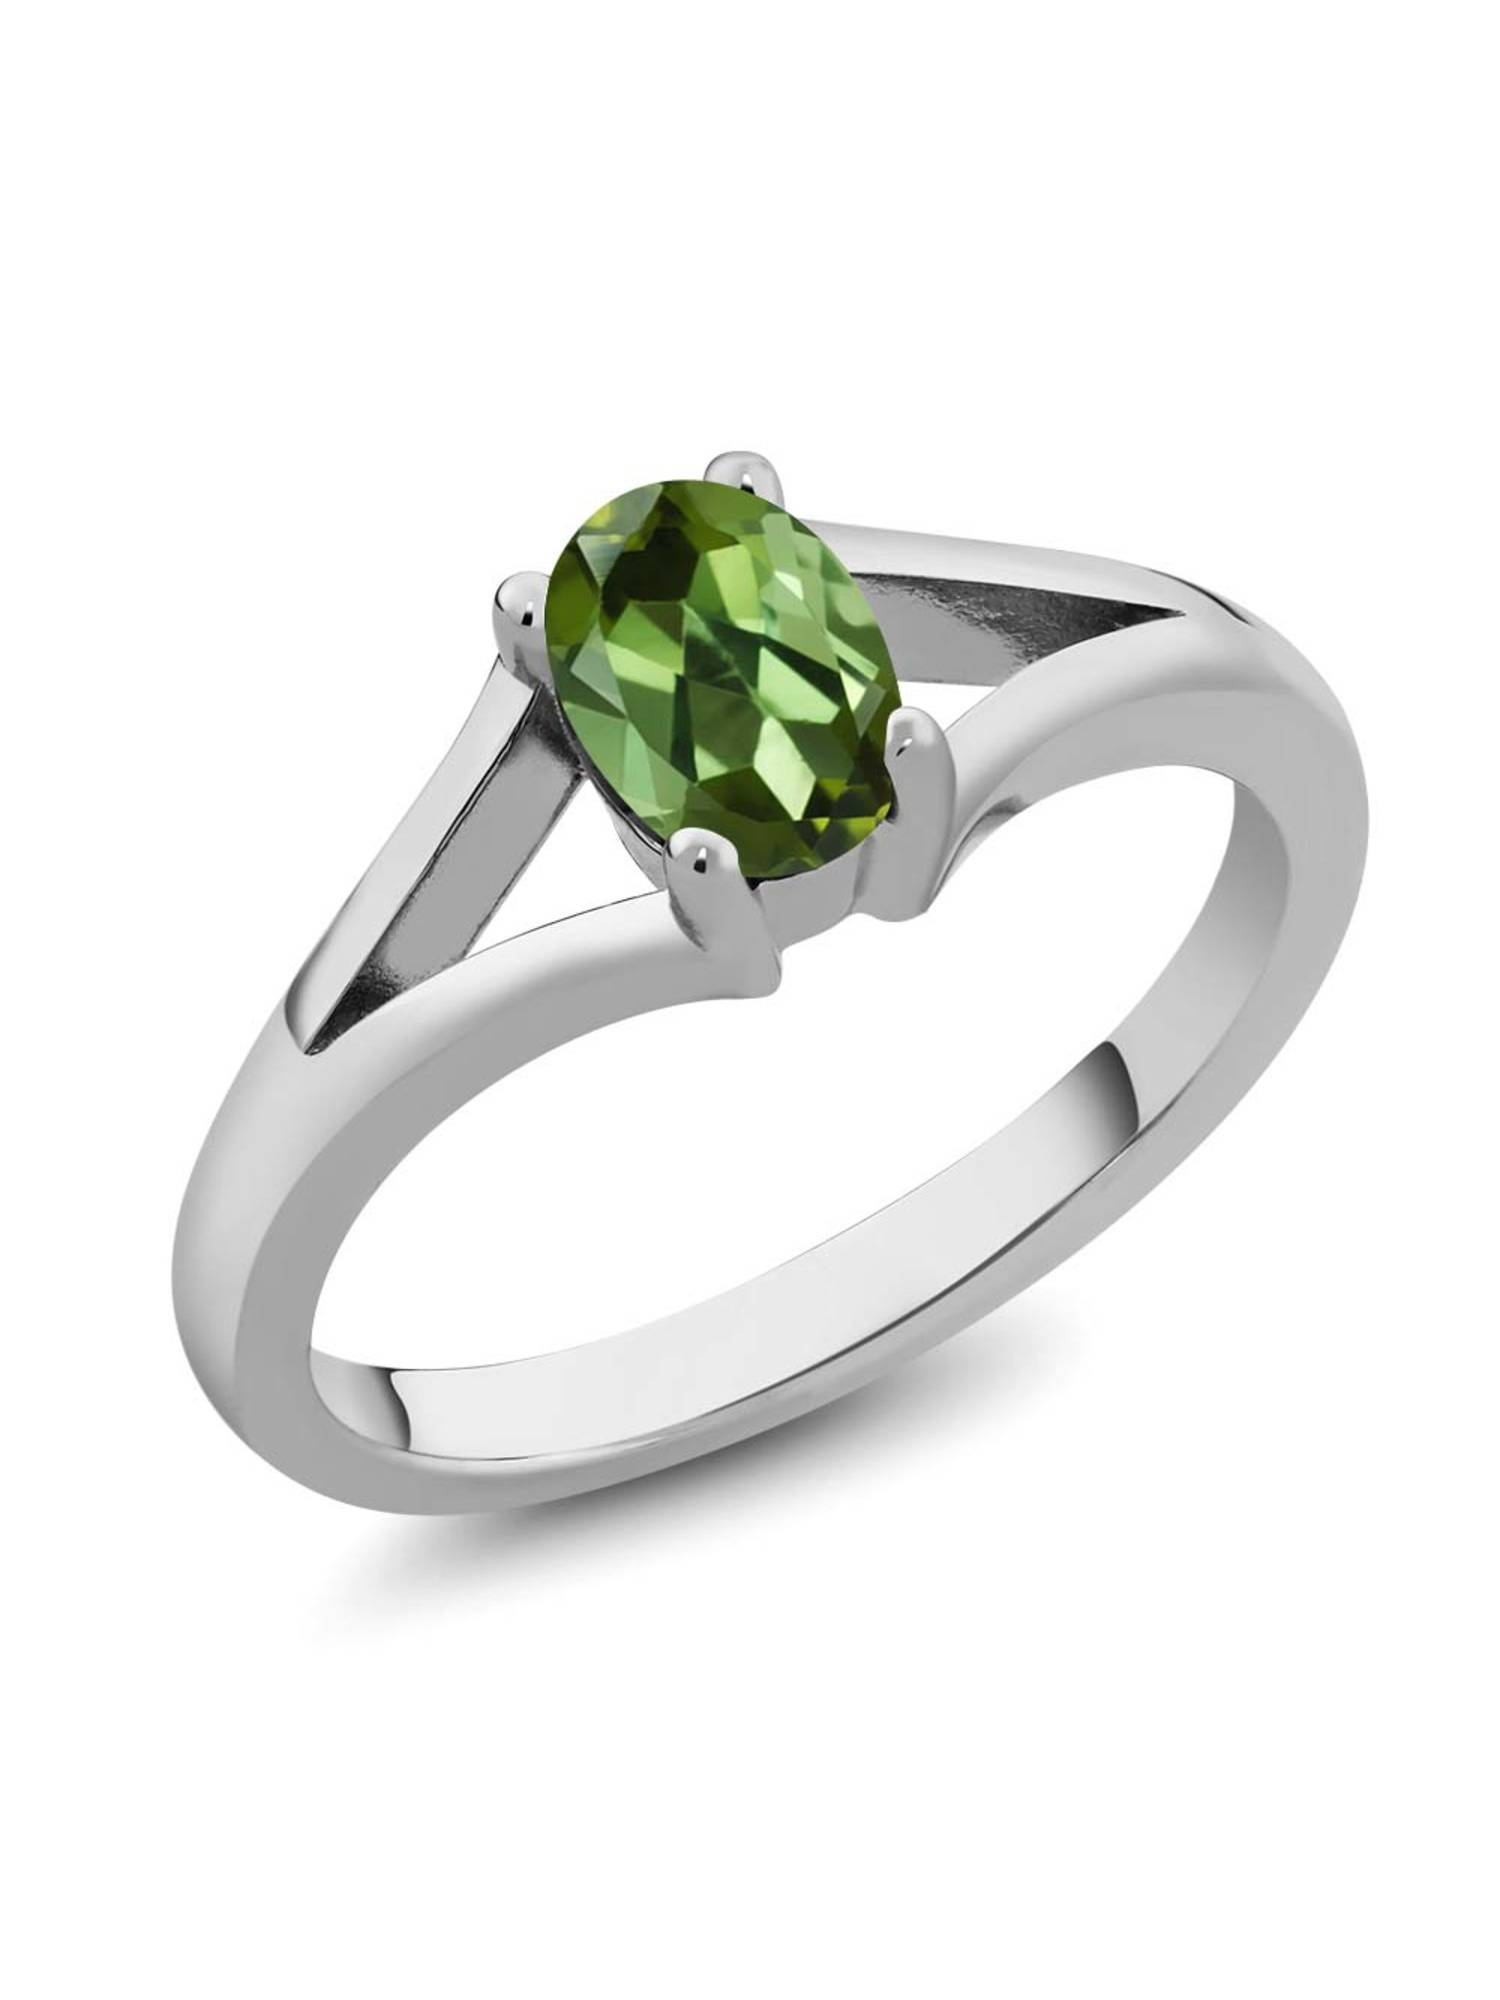 0.85 Ct 7x5mm Oval Green Tourmaline 925 Sterling Silver Solitaire Ring by